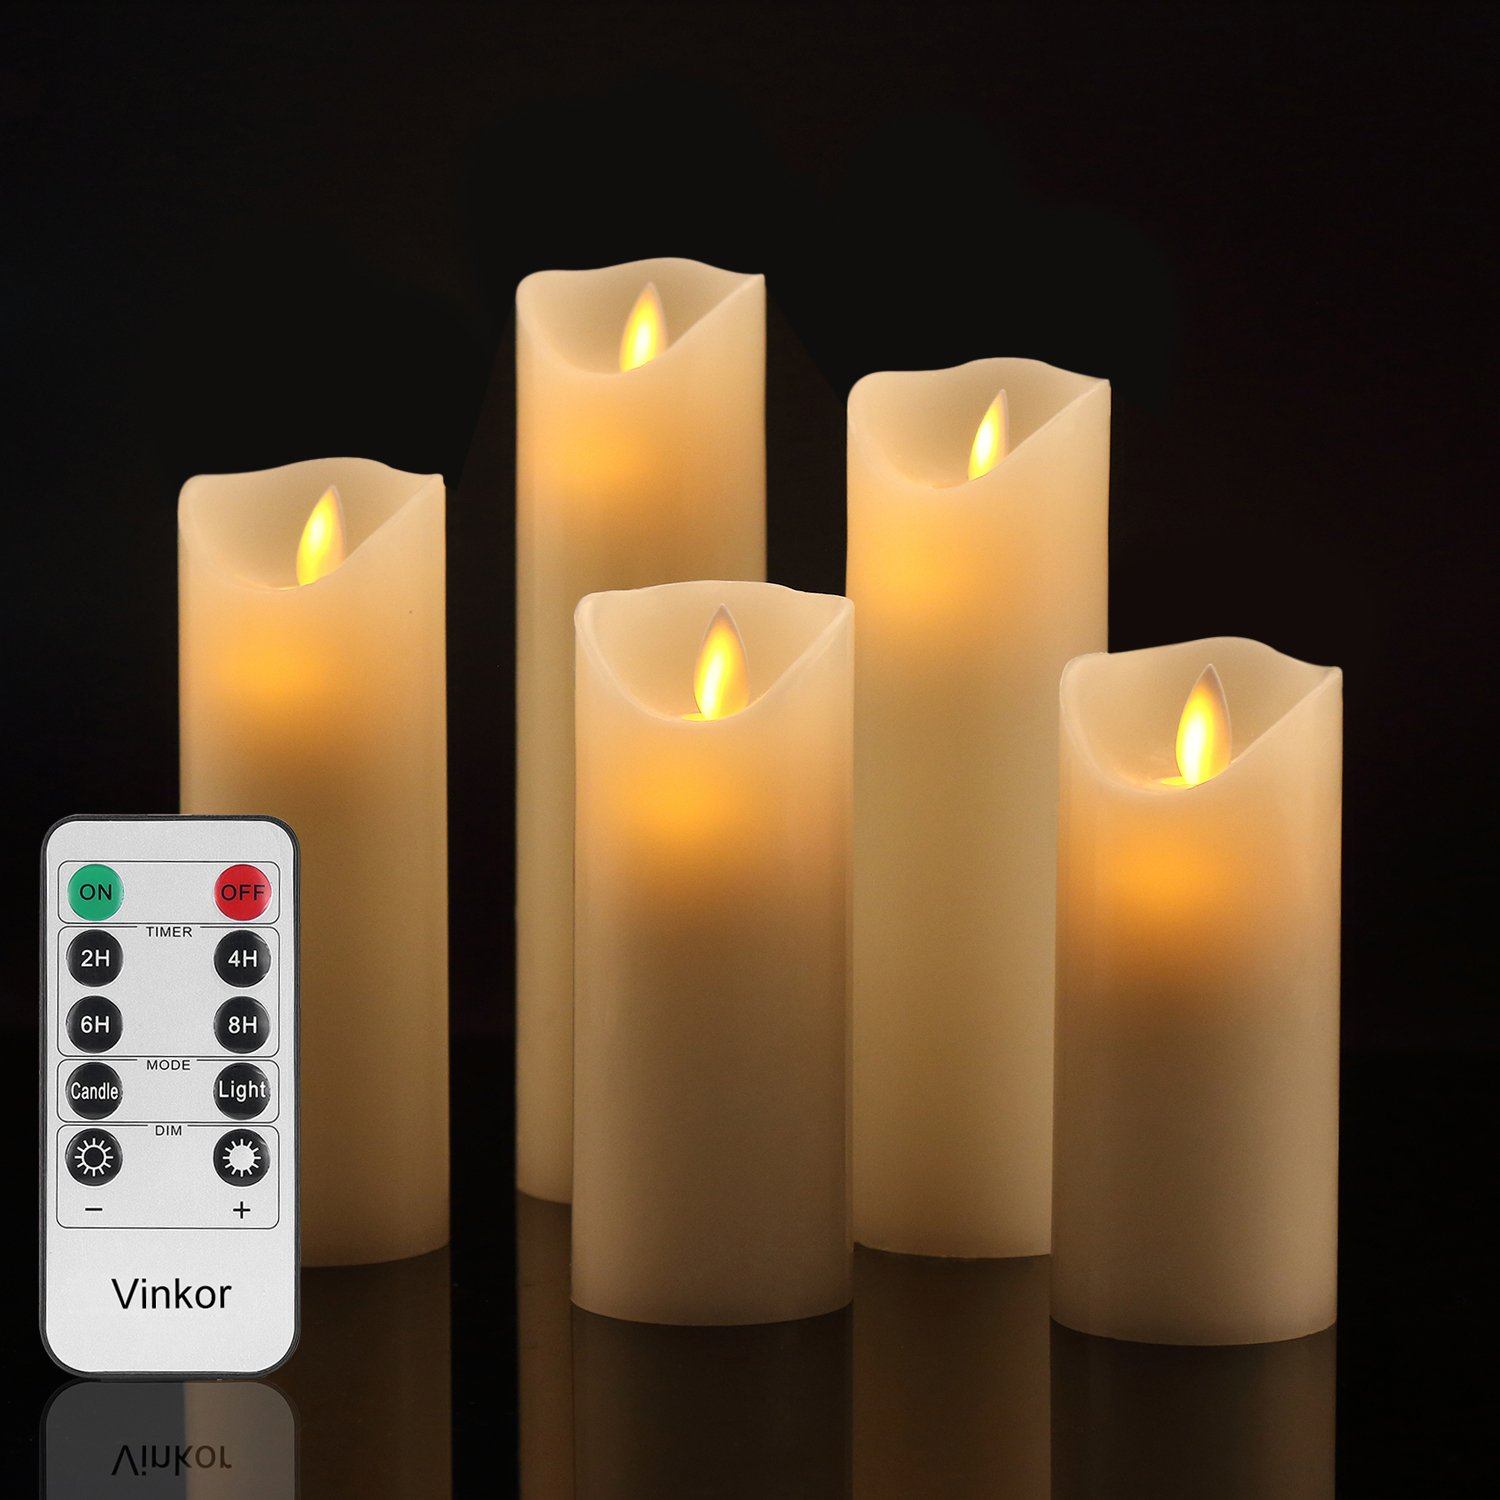 Vinkor Flameless Candles Battery Operated Candles Set Decorative Flameless Candles: 4'' 5'' 6'' 7'' 8'' Classic Real Wax Pillar With Moving LED Flame & 10-key Remote Control 2/4/6/8 Hours Timer